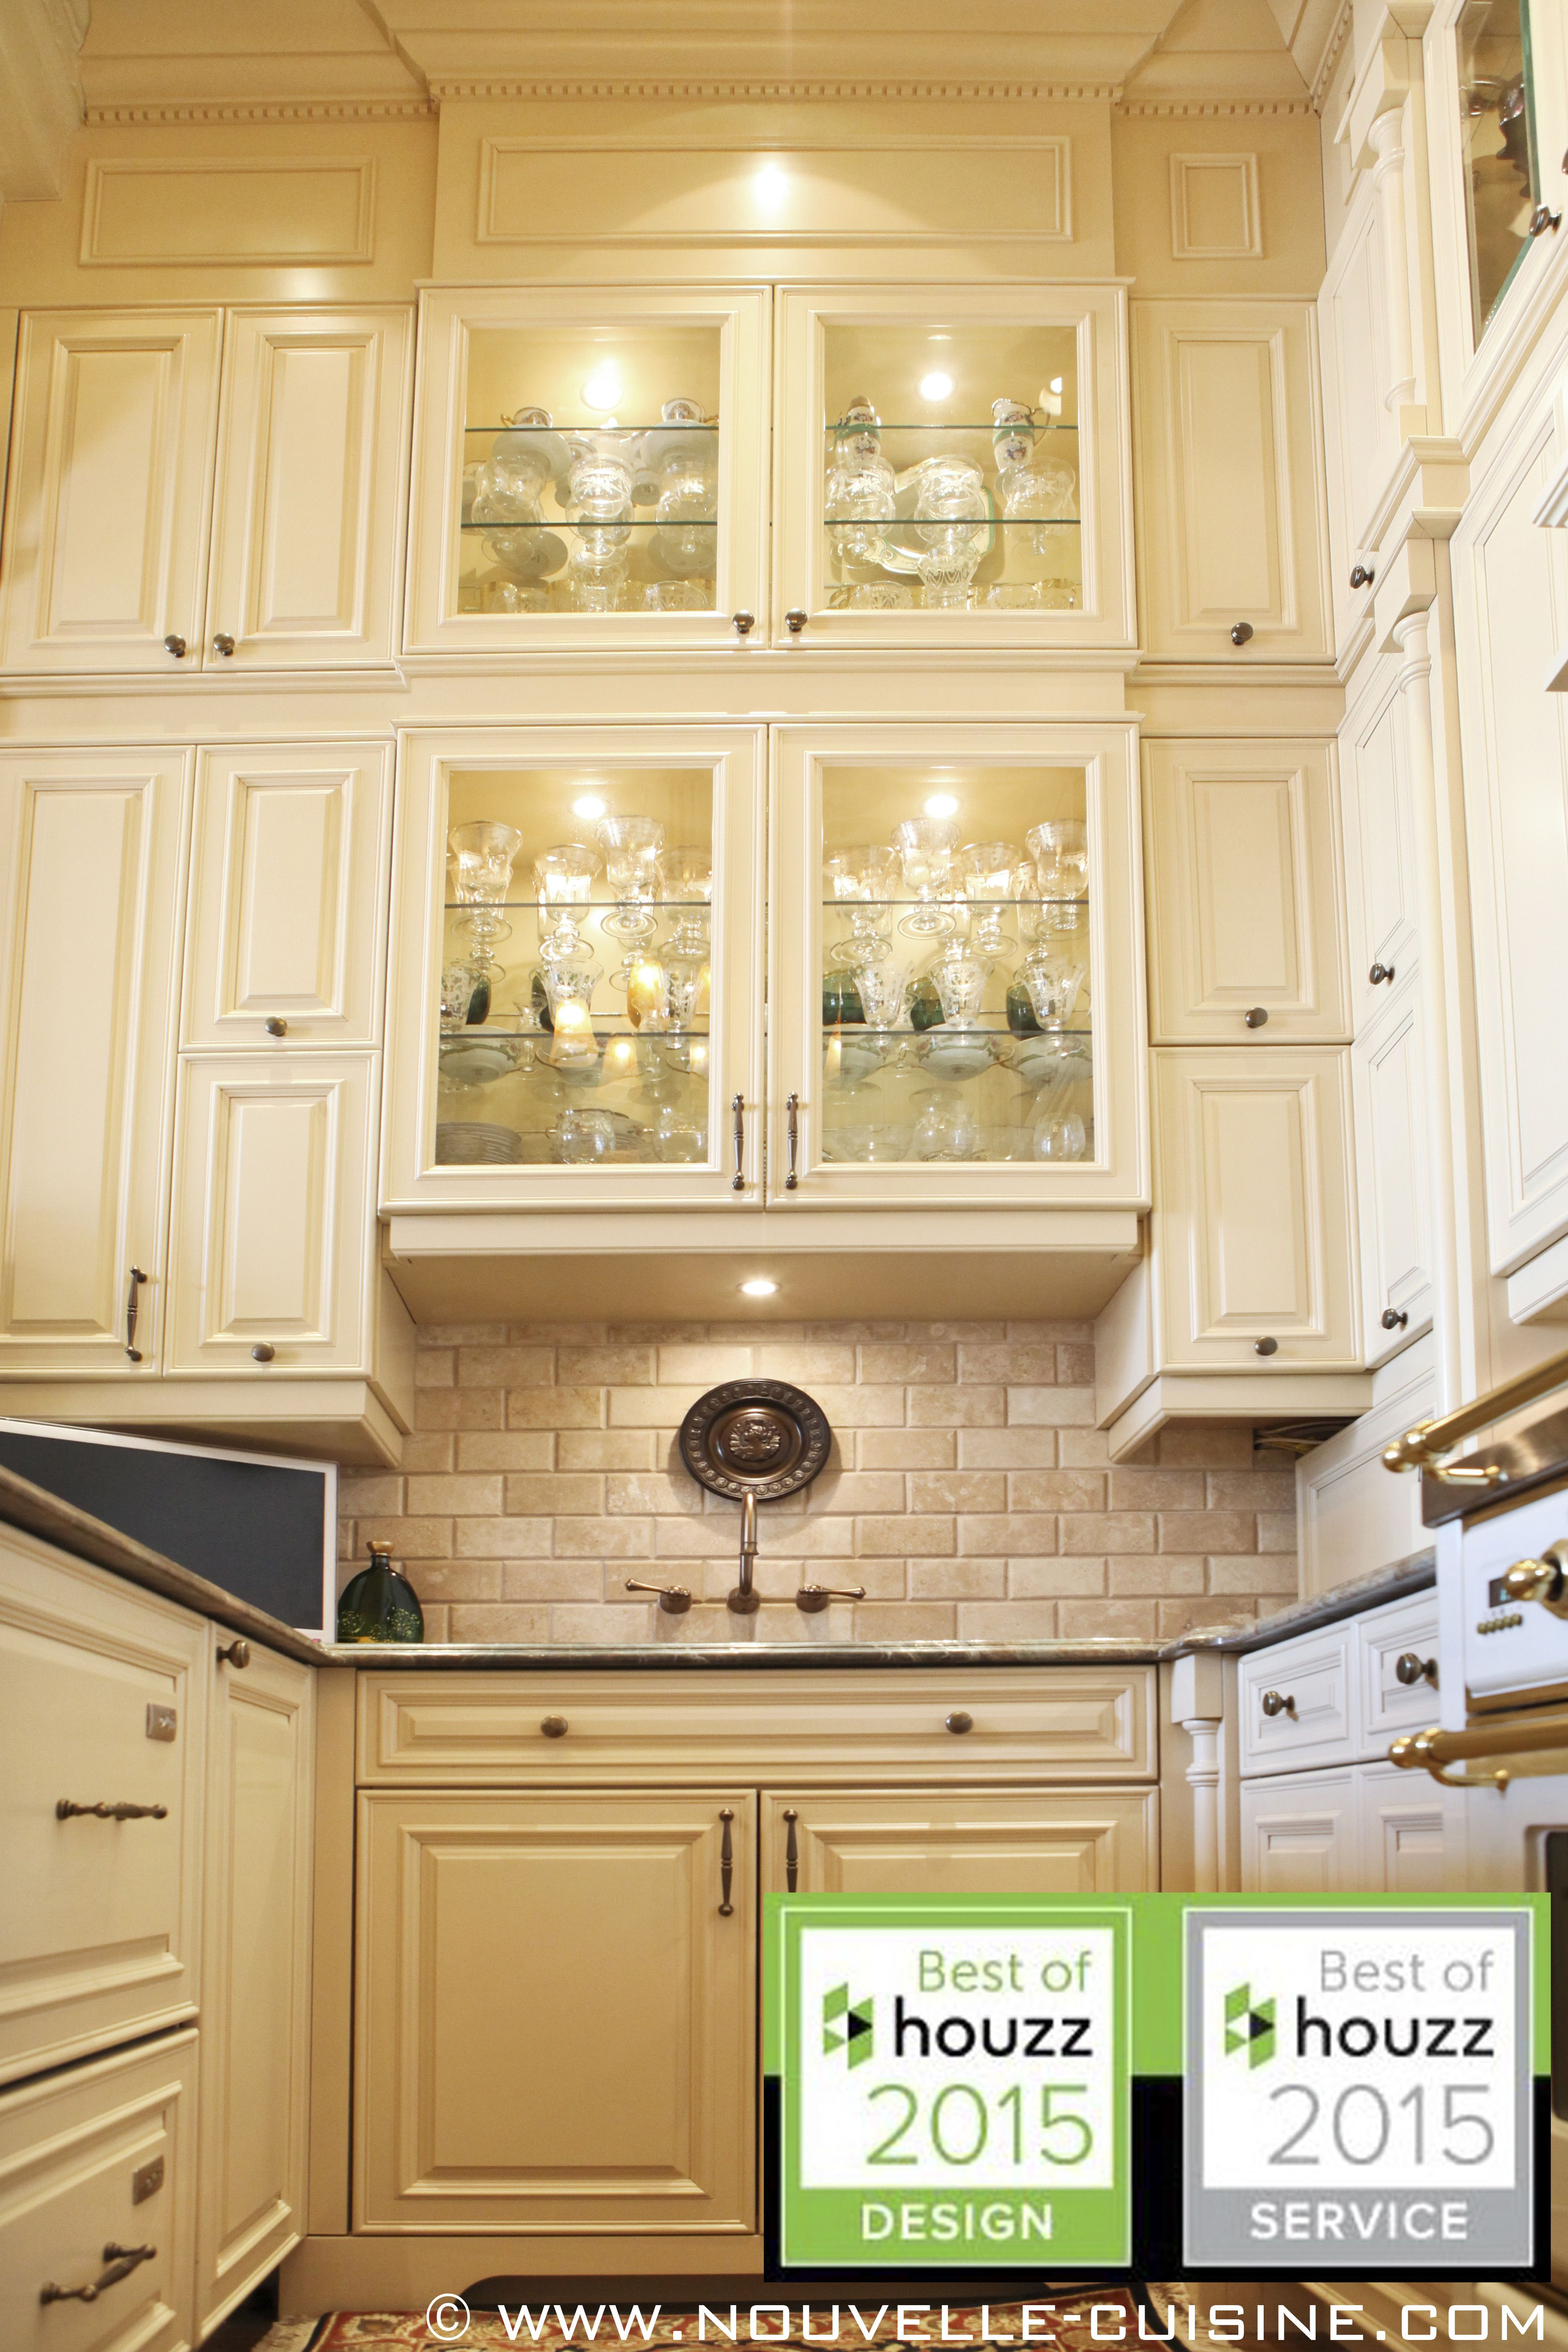 A Kitchen All About Height With Lacquered Cabinets And Granite Countertops Une Cuisine Toute En Hauteur Aux Kitchen Design Kitchen Cupboard Handles Kitchen